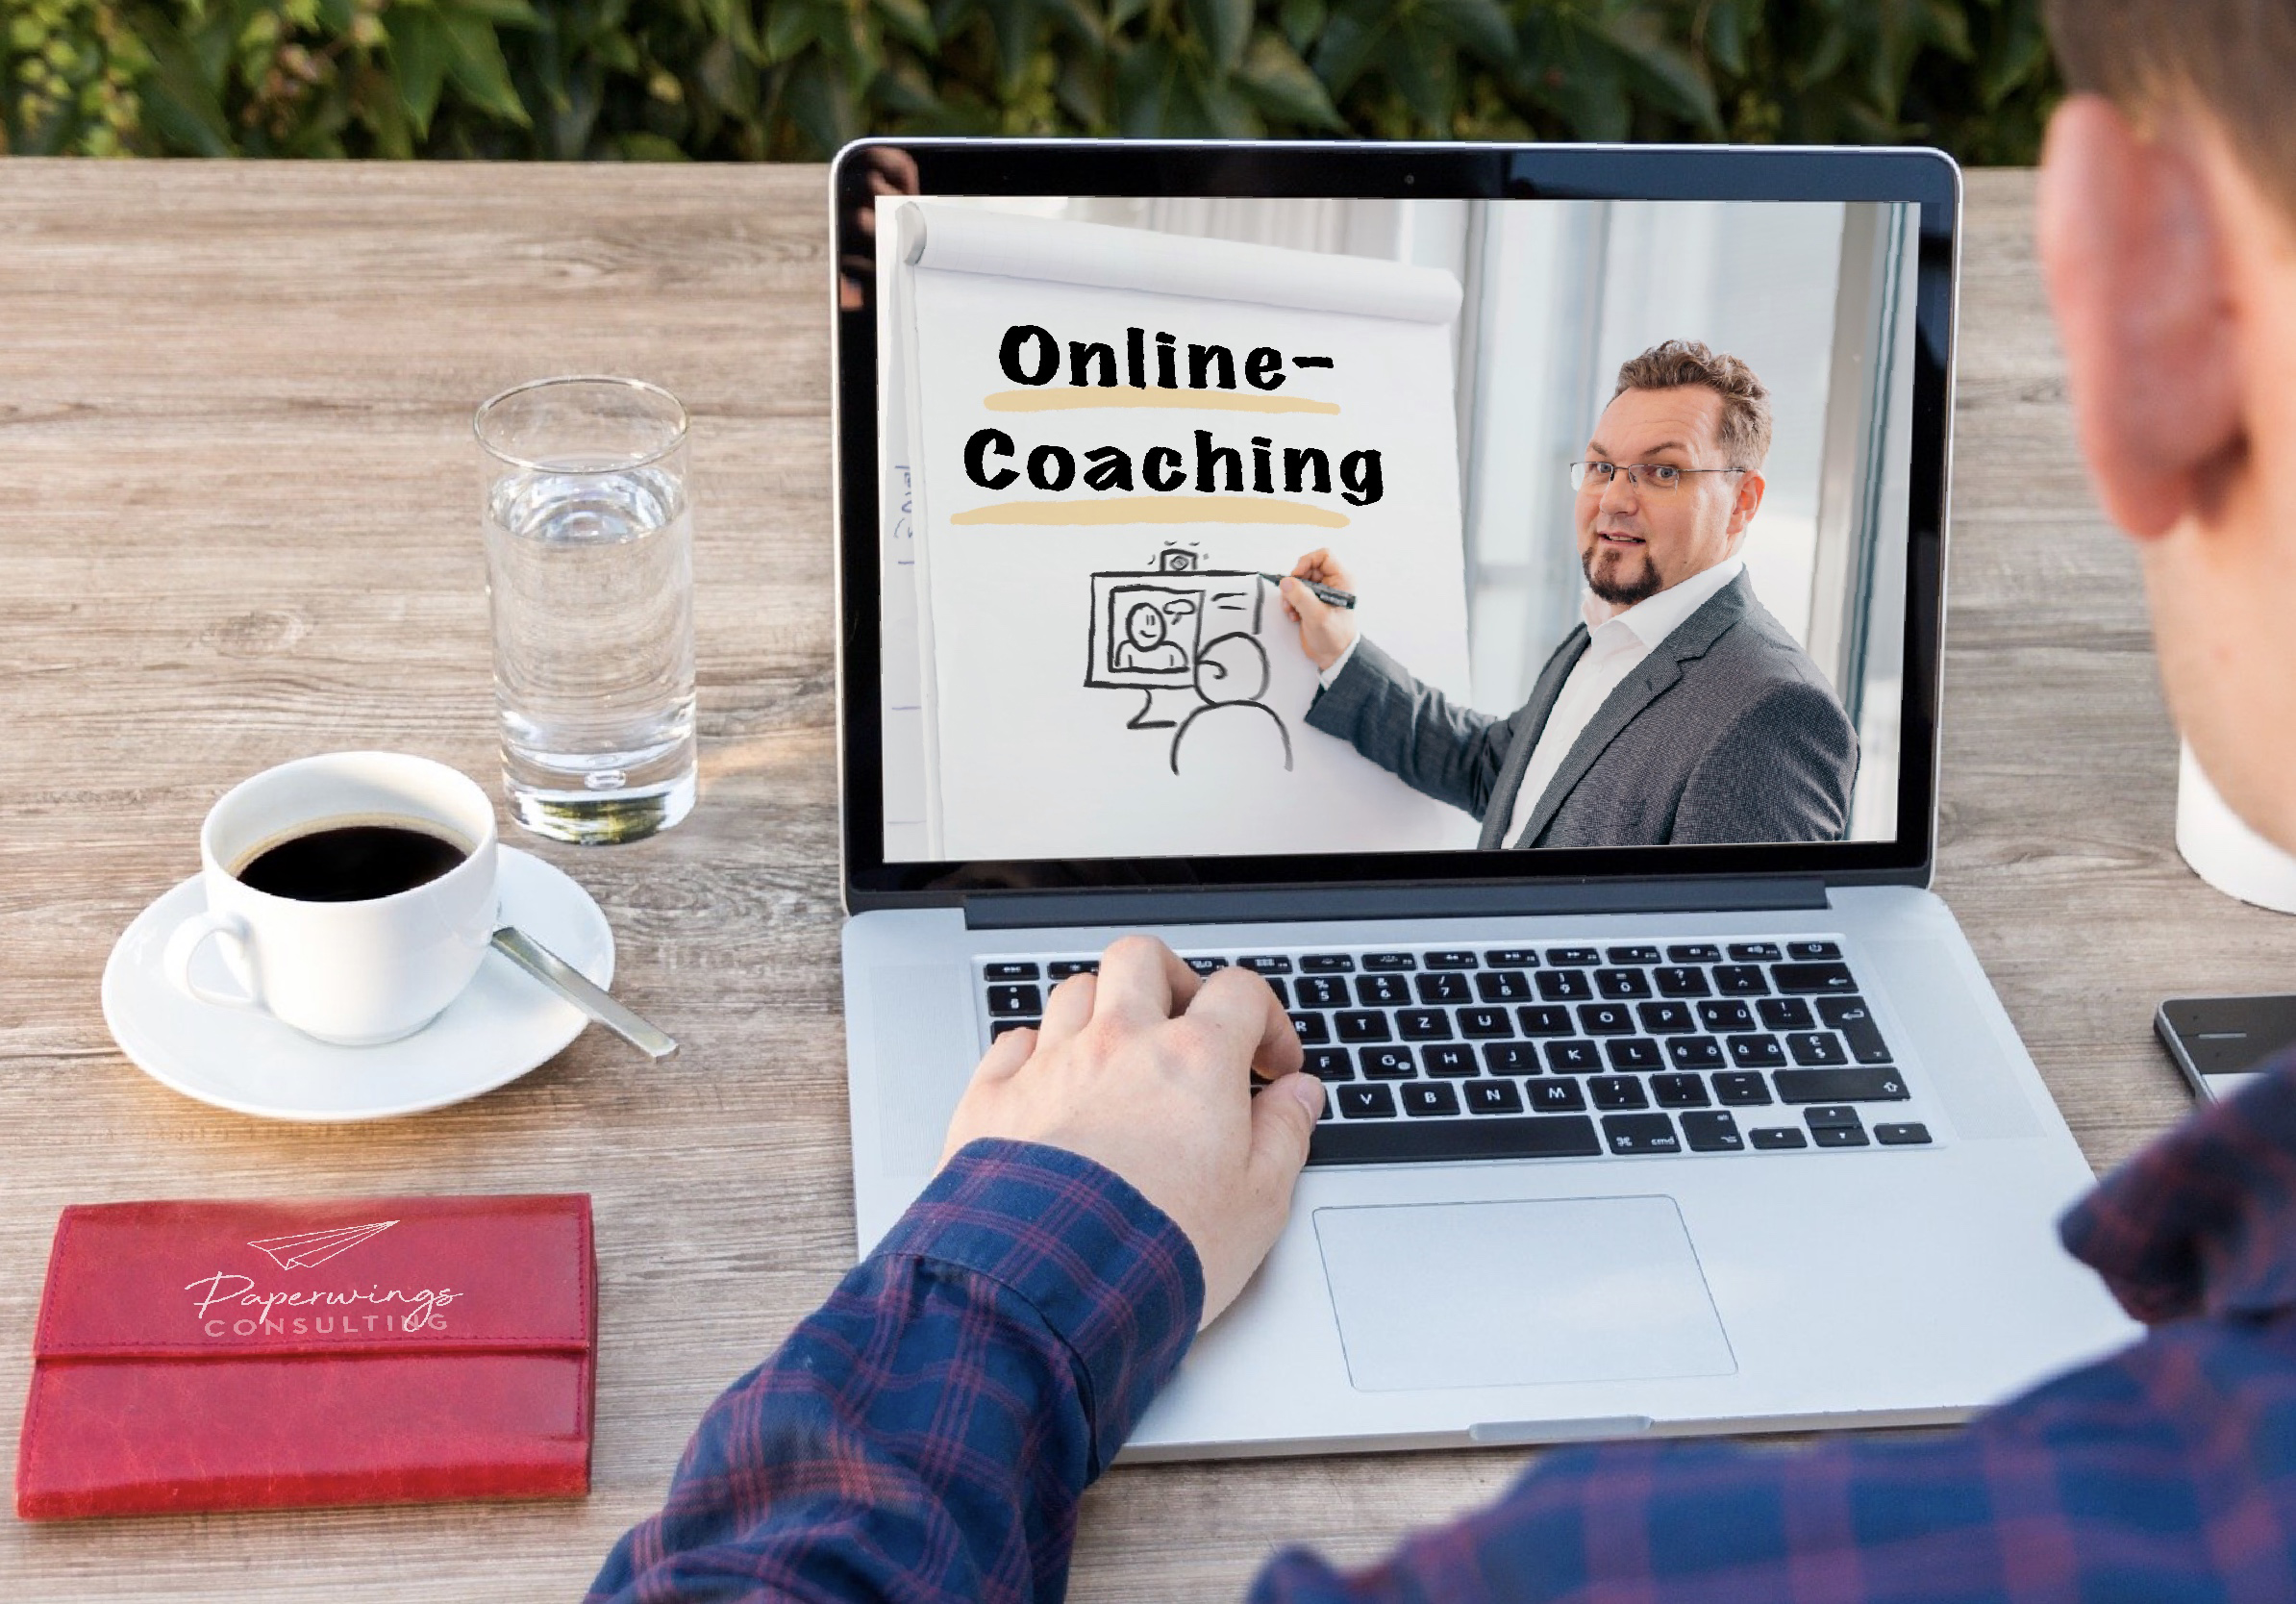 paperwings_consulting_dannyherzogbraune_online_coaching